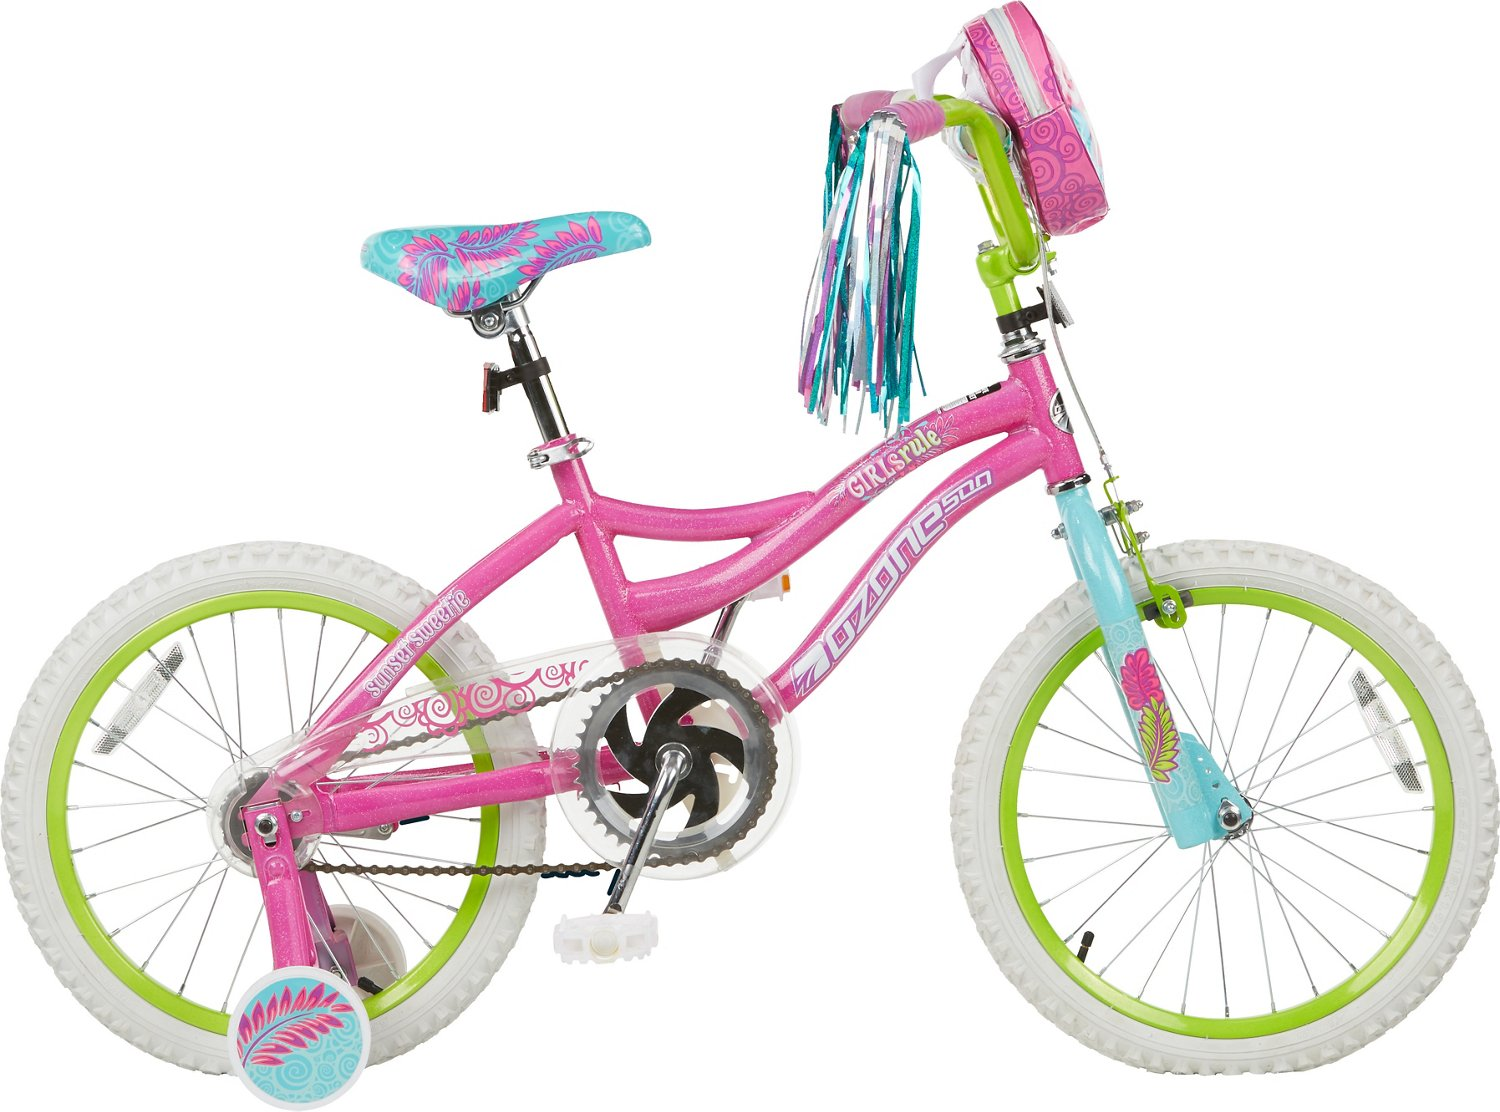 f25e1917e3f Display product reviews for Ozone 500 Girls' 18 in Girls Rule Bike